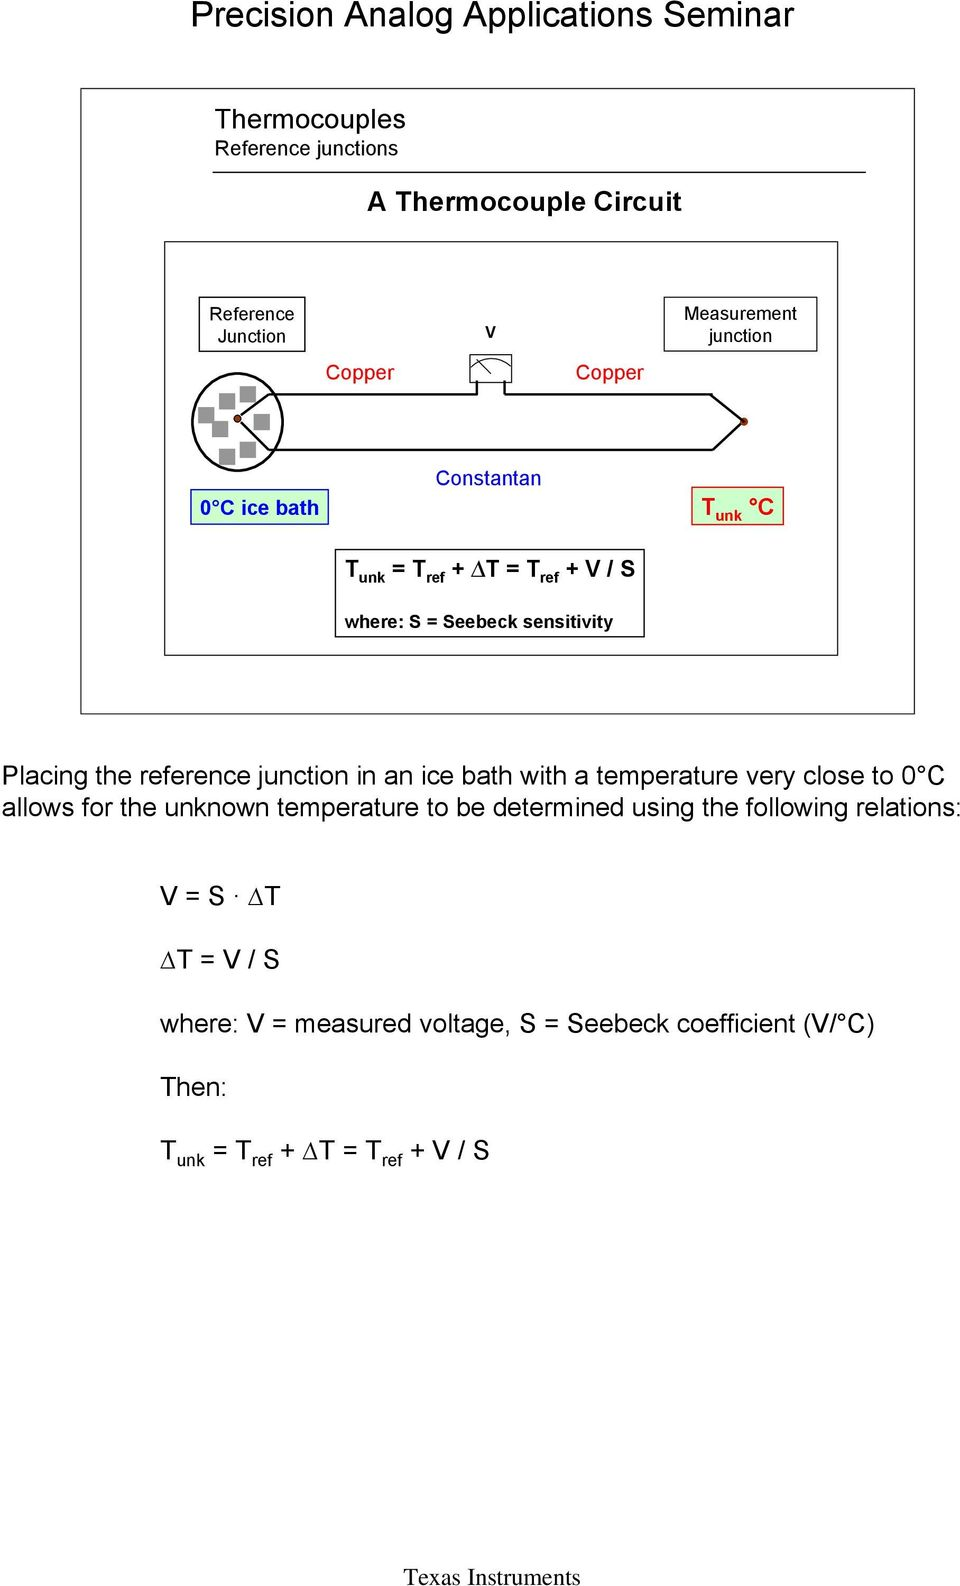 Thermocouple Application Section 3 Pdf Circuit Temperature Very Close To 0 C Allows For The Unknown Be Determined Using